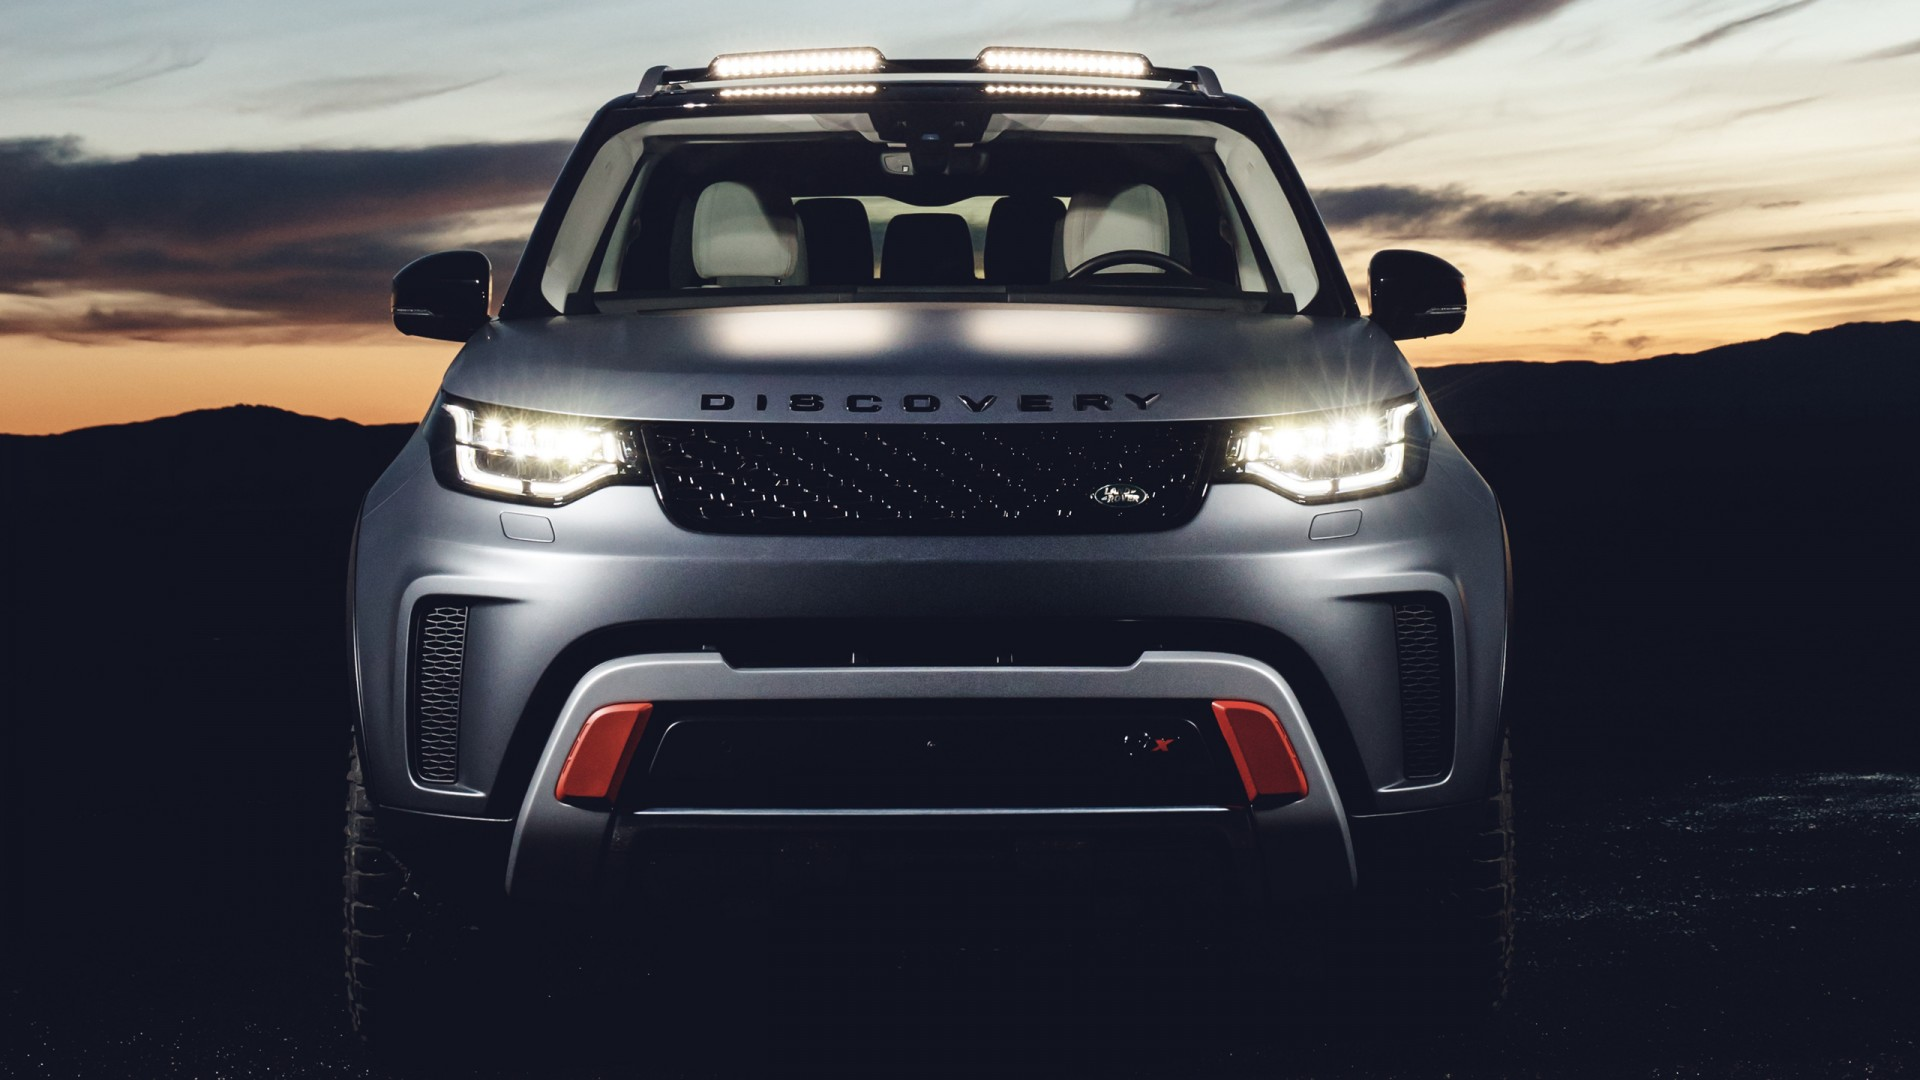 Tuning Car Iphone Wallpaper 2018 Land Rover Discovery Svx Wallpaper Hd Car